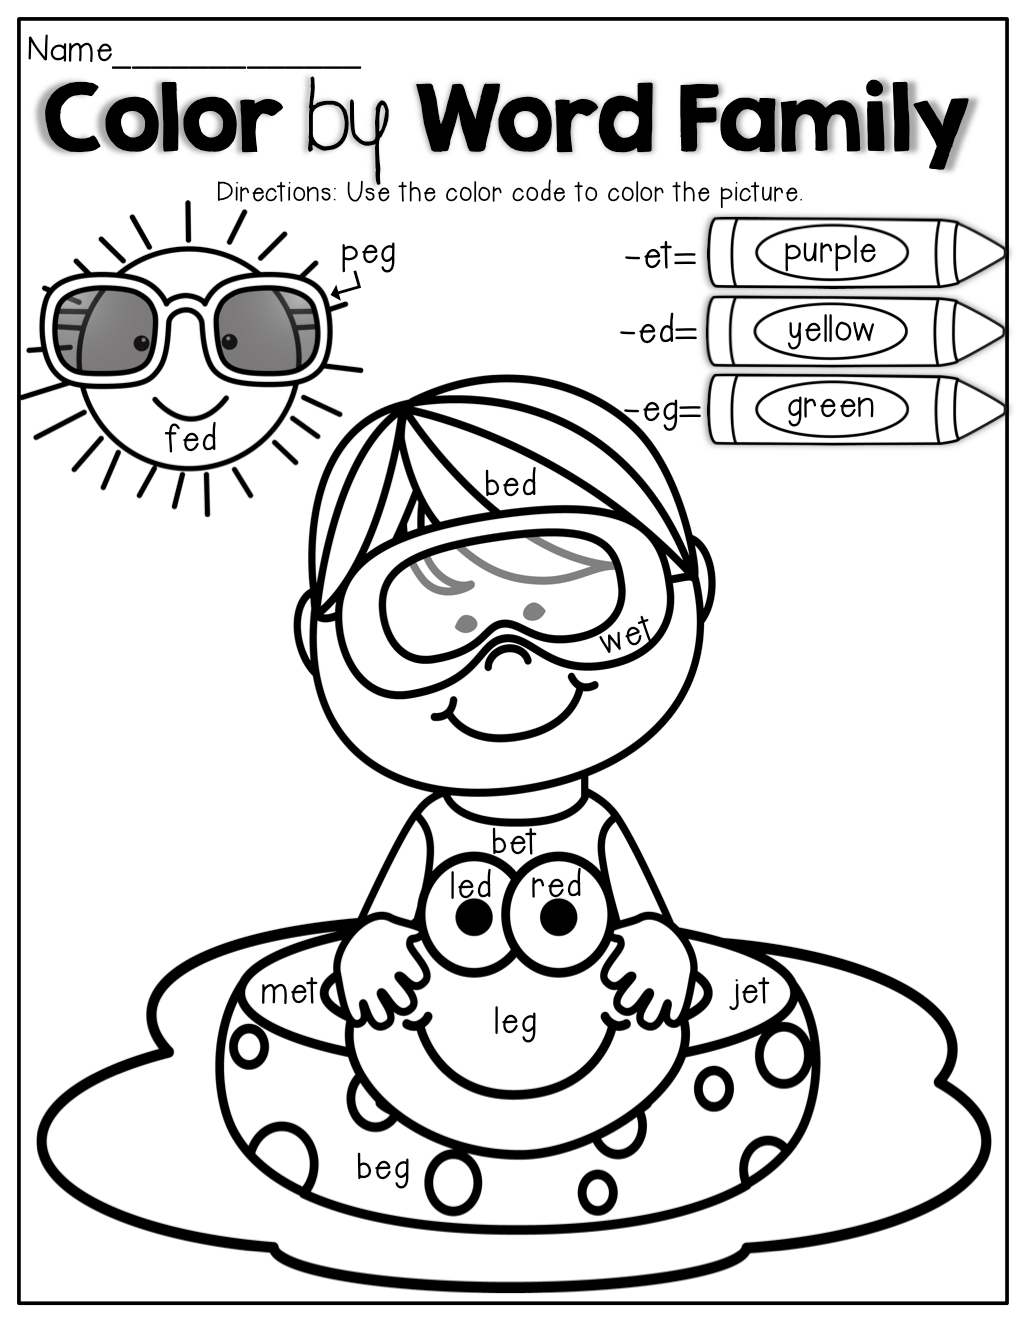 Color By Word Family An Educational Coloring Book That Helps Kids Work With 60 Word Families